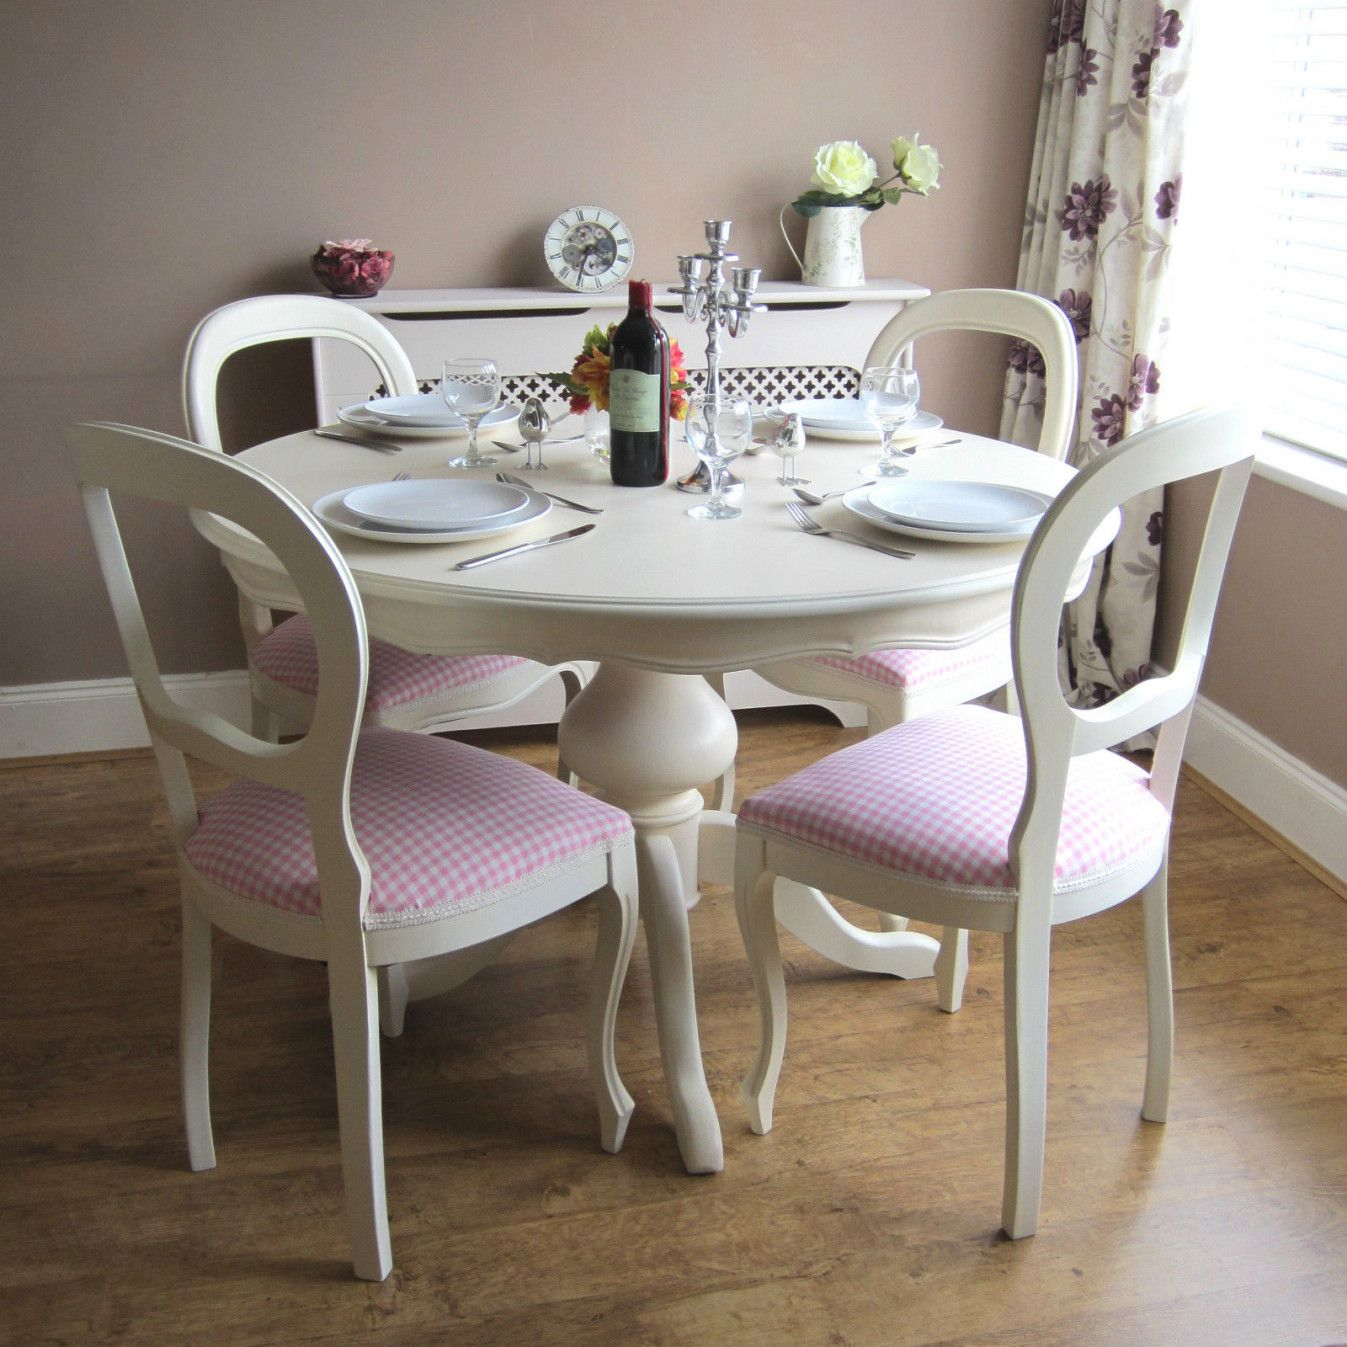 2019 Shabby Chic Round Dining Table And Chairs  Modern Design Stunning Chic Dining Room Sets 2018